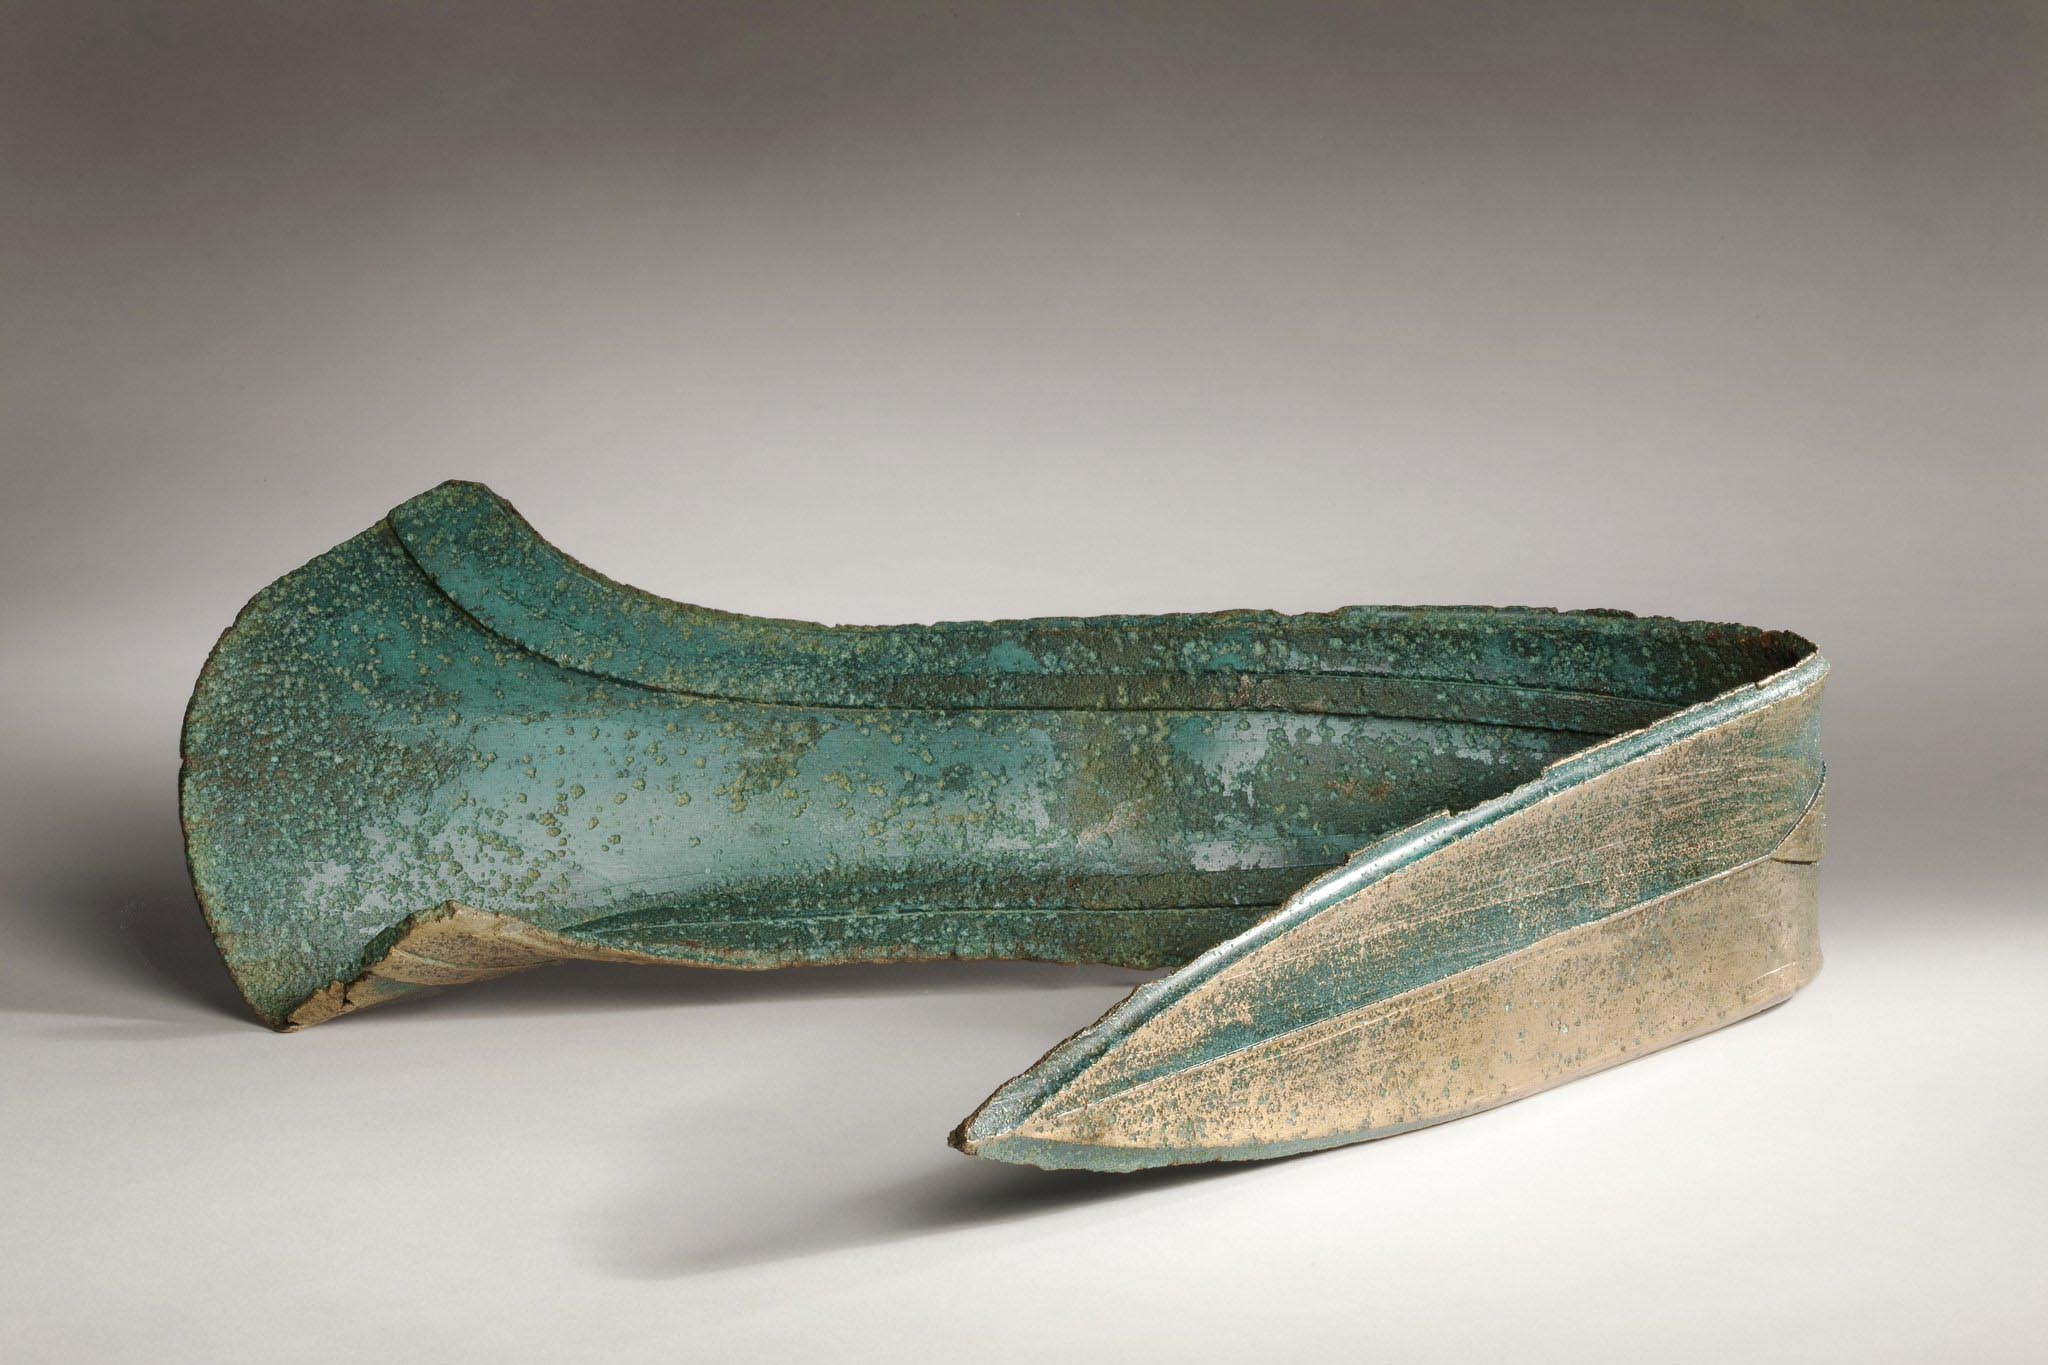 a photo of a bent dagger with green verdigris